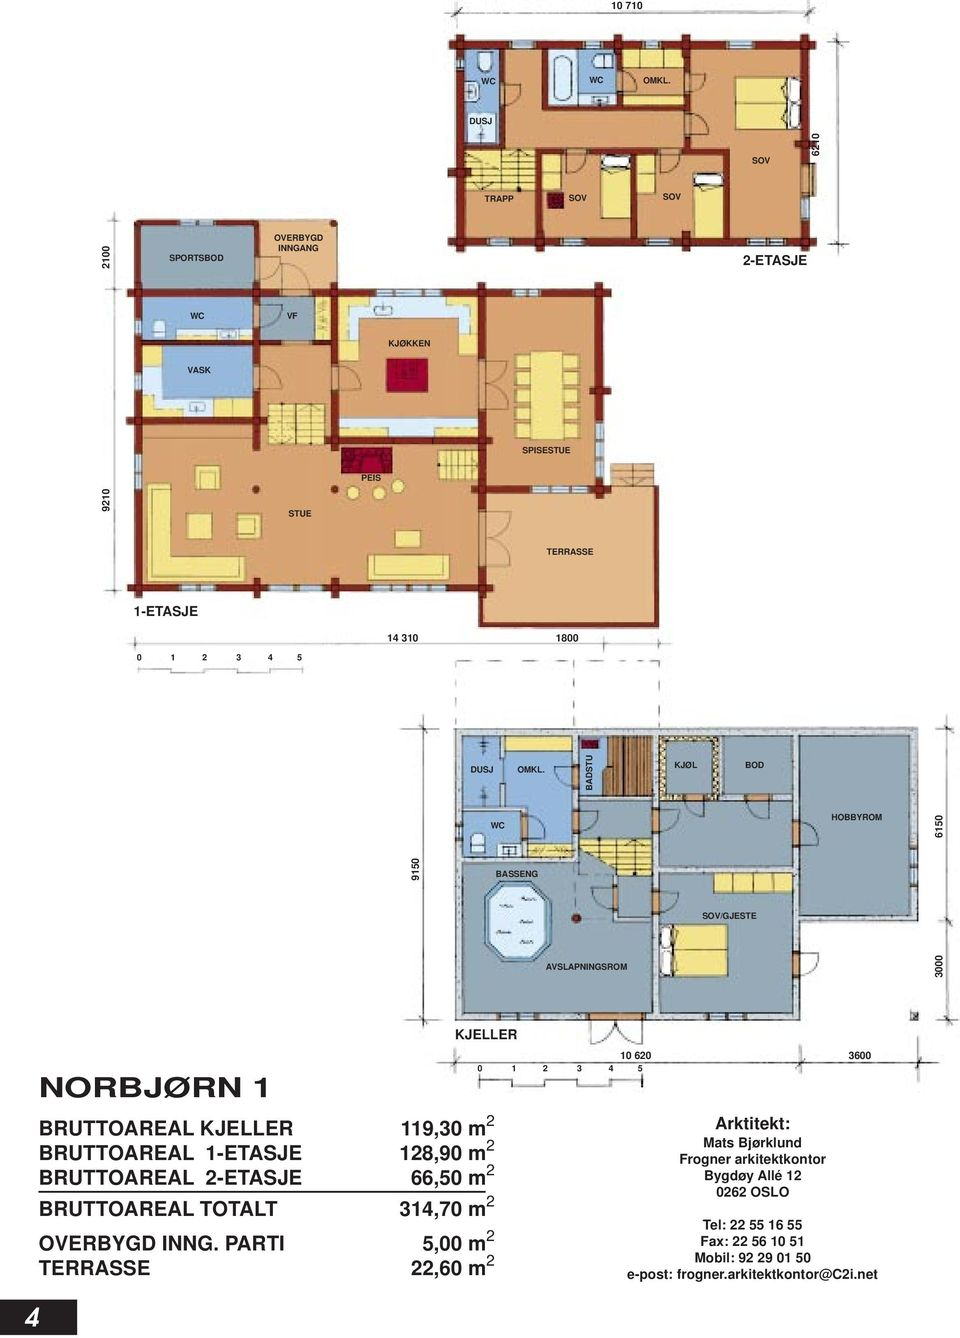 1-ETASJE 128,90 m 2 BRUTTOAREAL 2-ETASJE 66,50 m 2 BRUTTOAREAL TOTALT 314,70 m 2 OVERBYGD INNG.